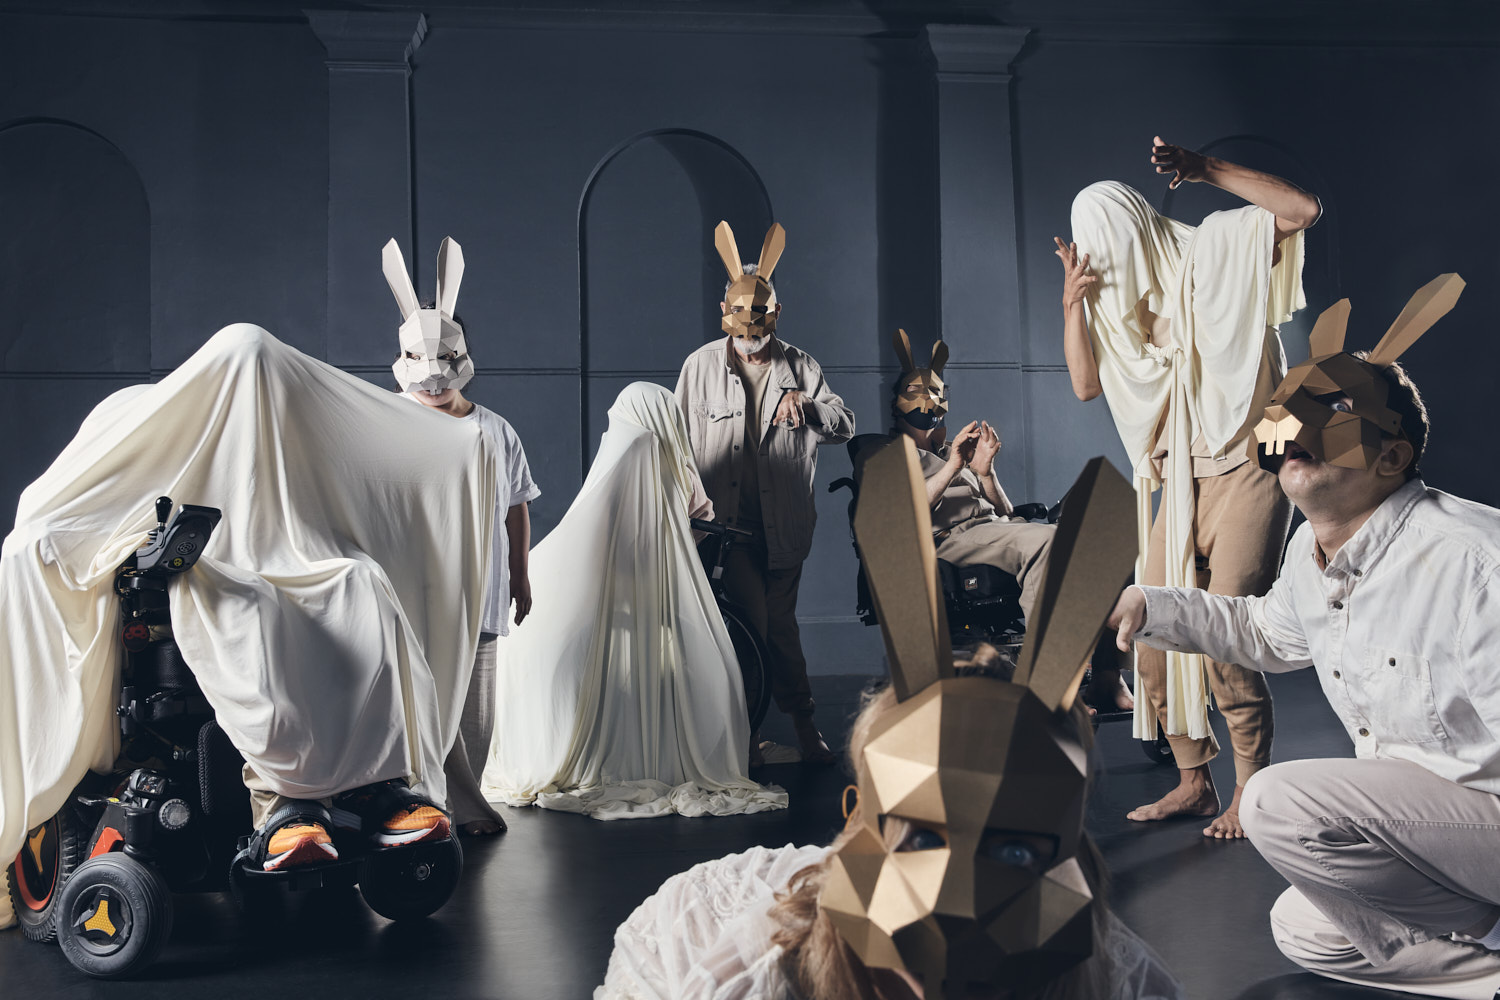 Group of performers dressed in white and cream holding different positions, staggered close to far away from the camera. Some people have sheets wrapped around their head and body, others are wearing gold geometric rabbit masks.